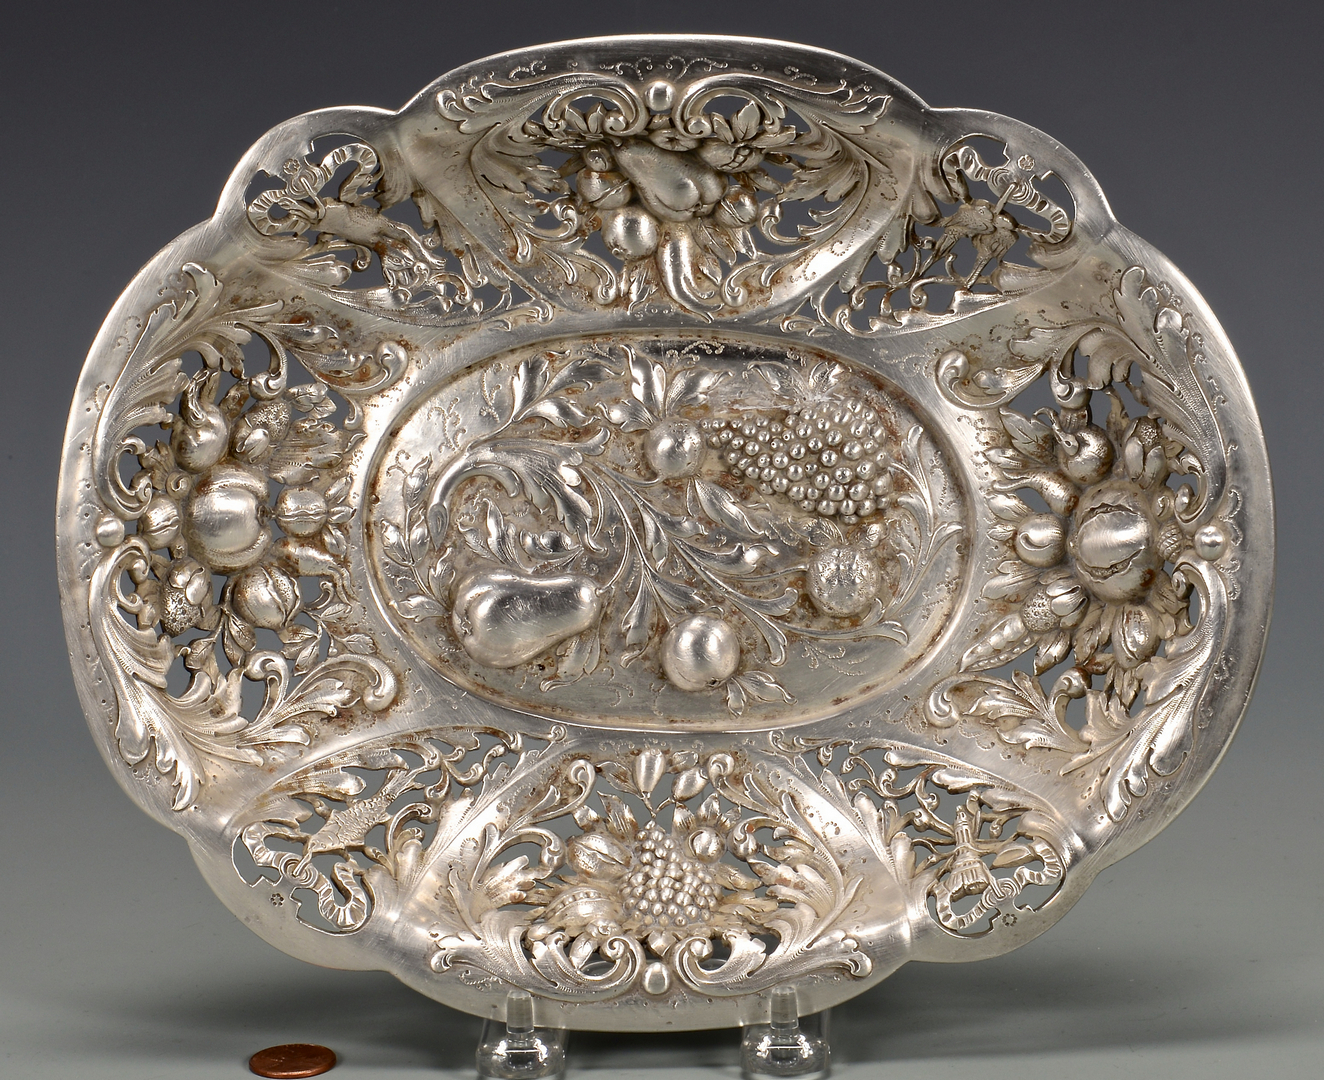 Lot 818 E F Caldwell Oval Sterling Bowl